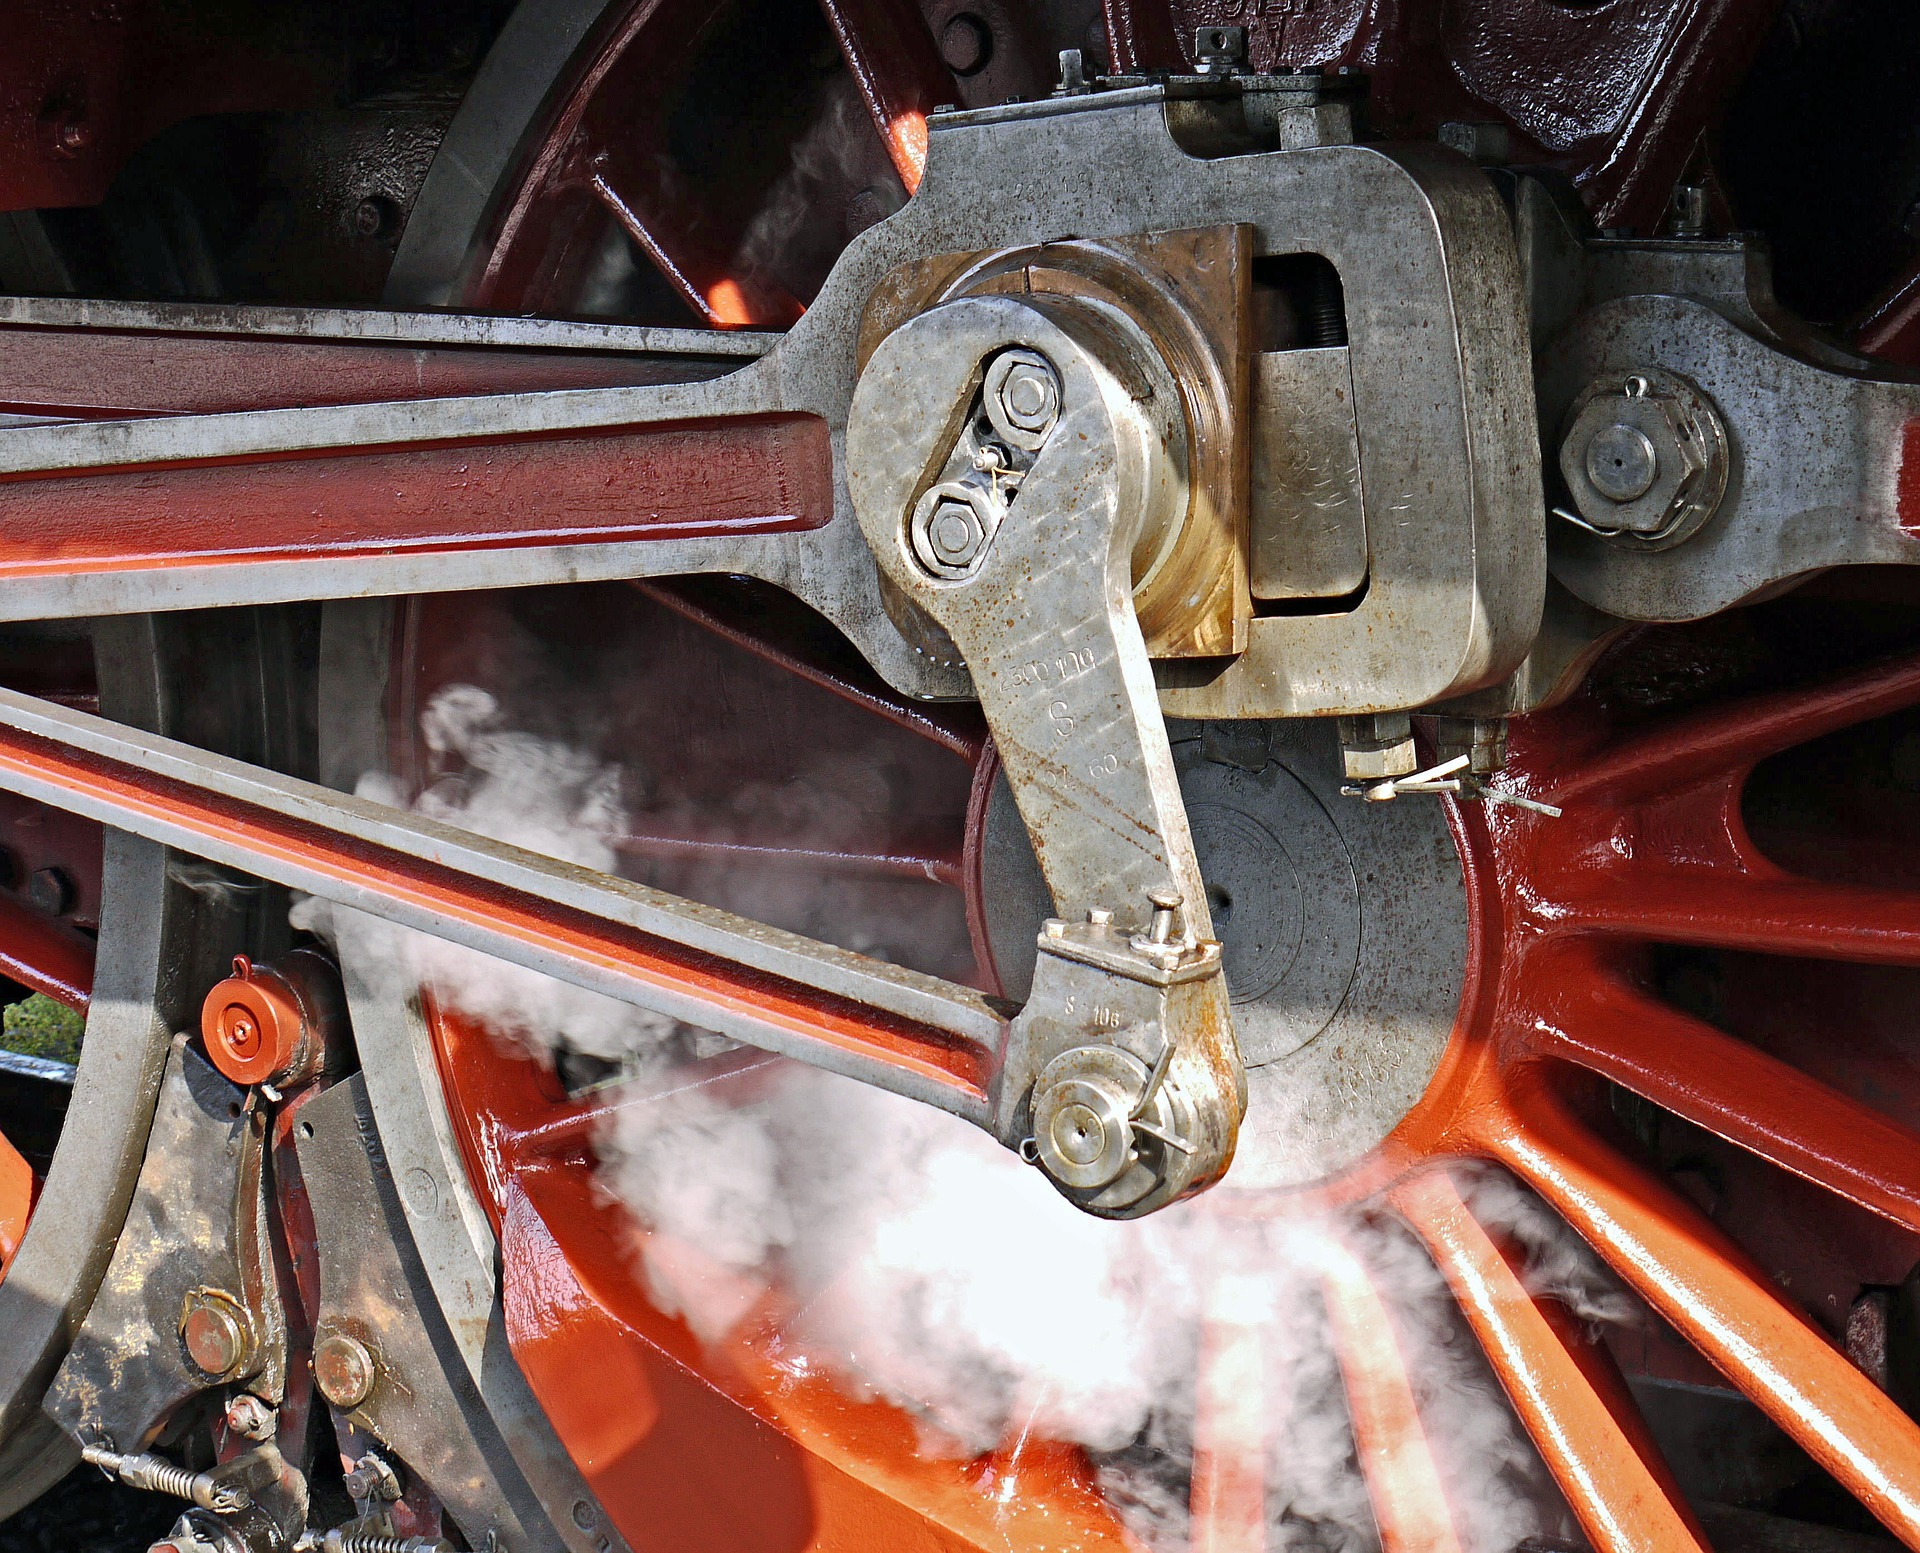 A picture of a steam locomotive wheel by hpgruesen from Pixabay